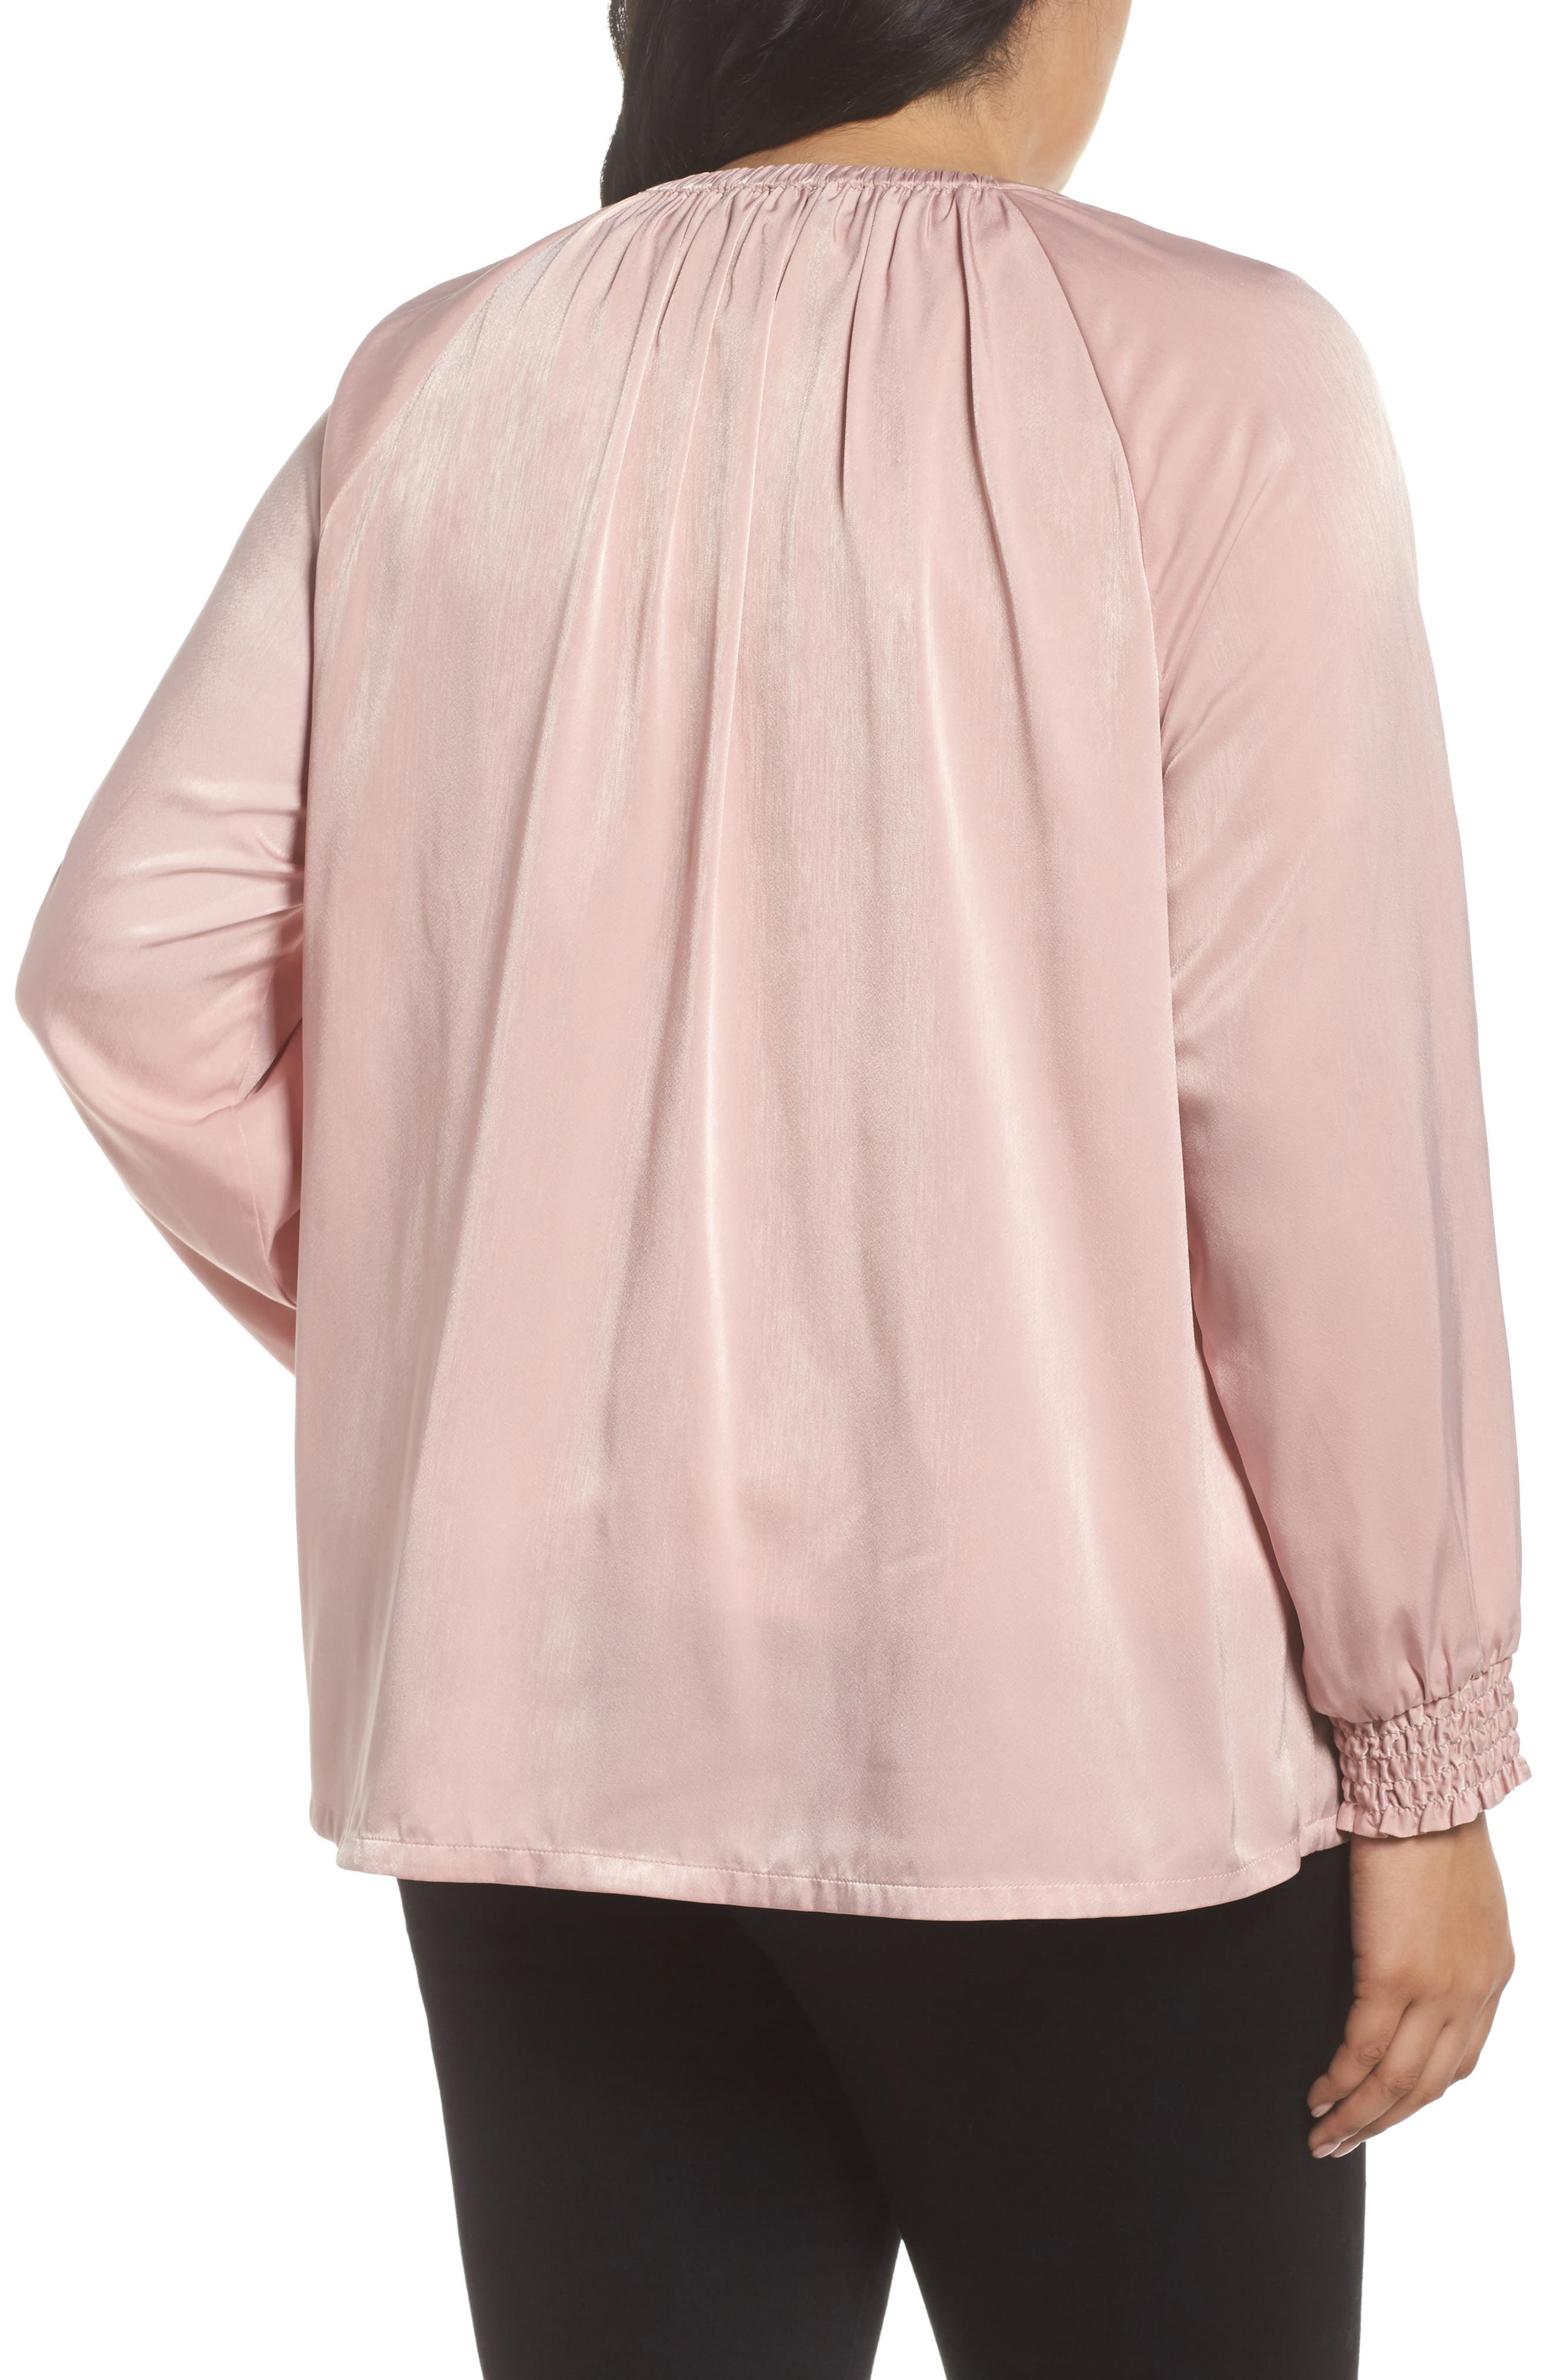 Swing Back Satin Bomber Jacket,                             Alternate thumbnail 2, color,                             Pink Puff